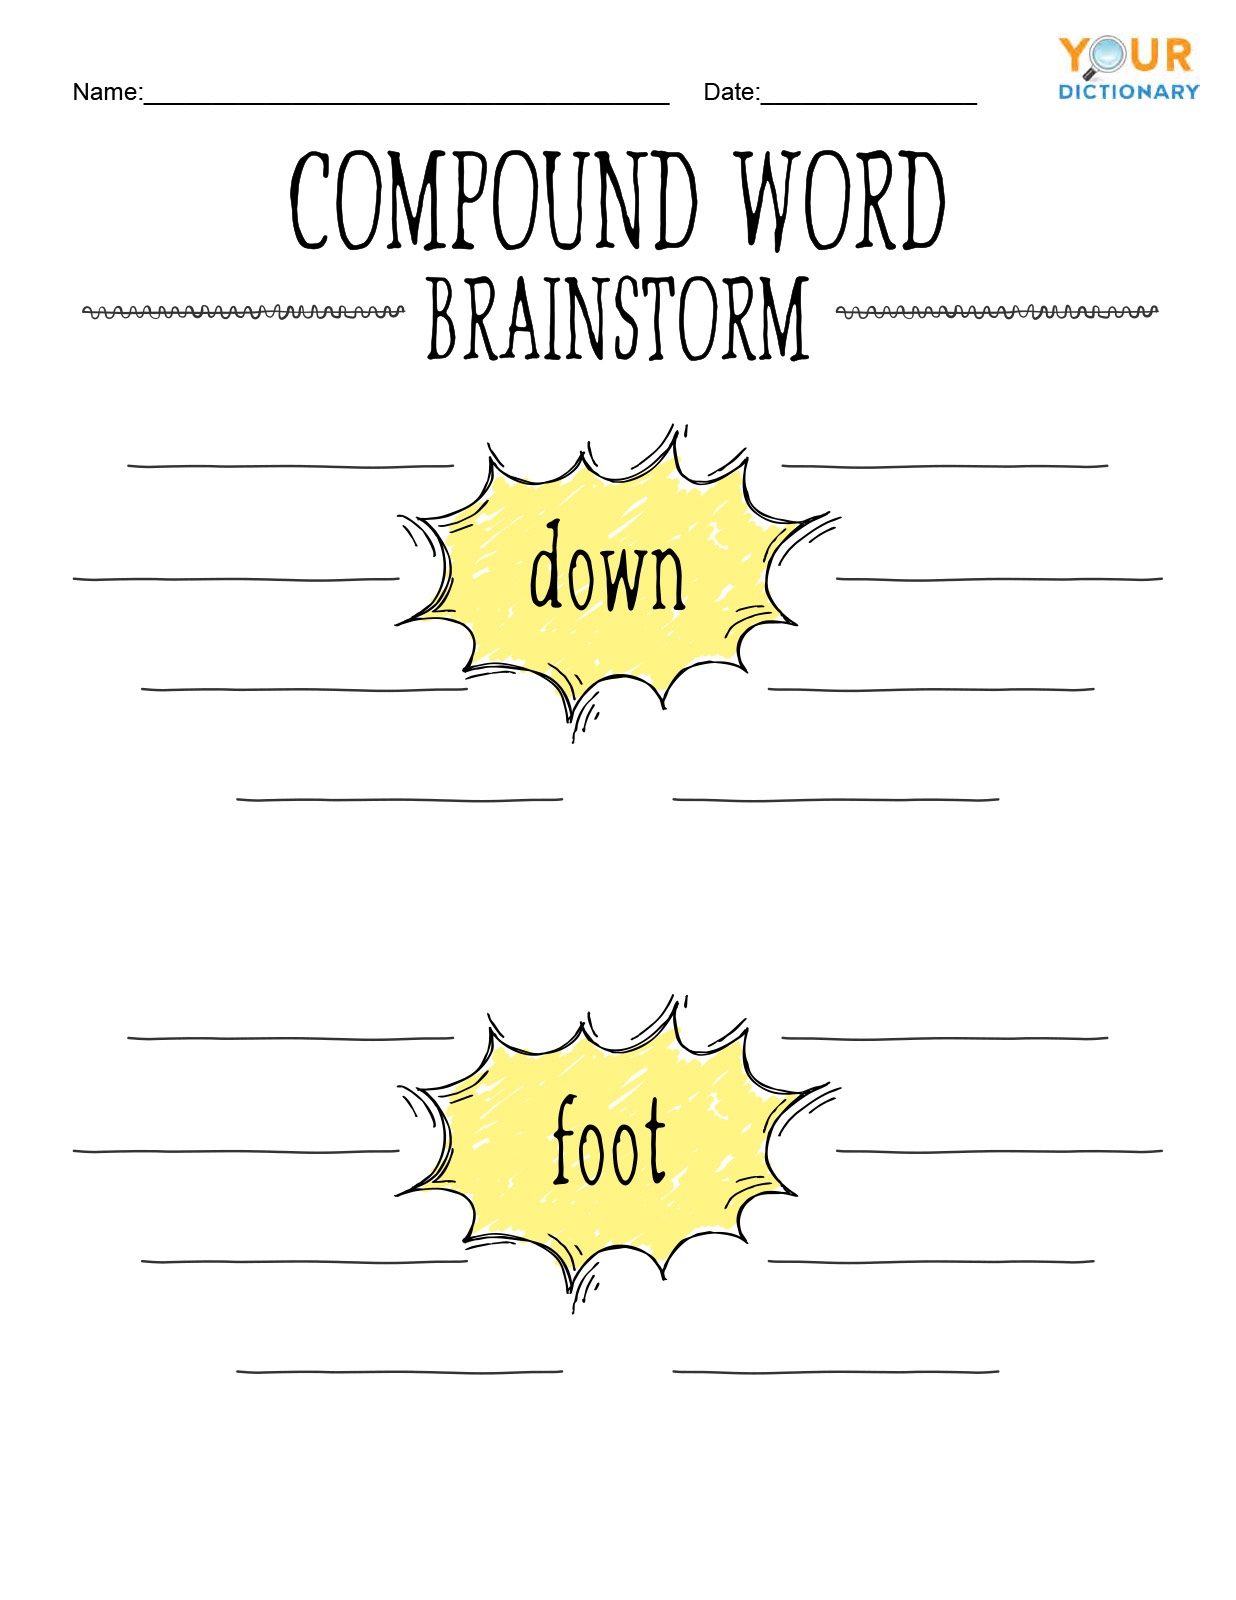 Compound Word Brainstorm Worksheet